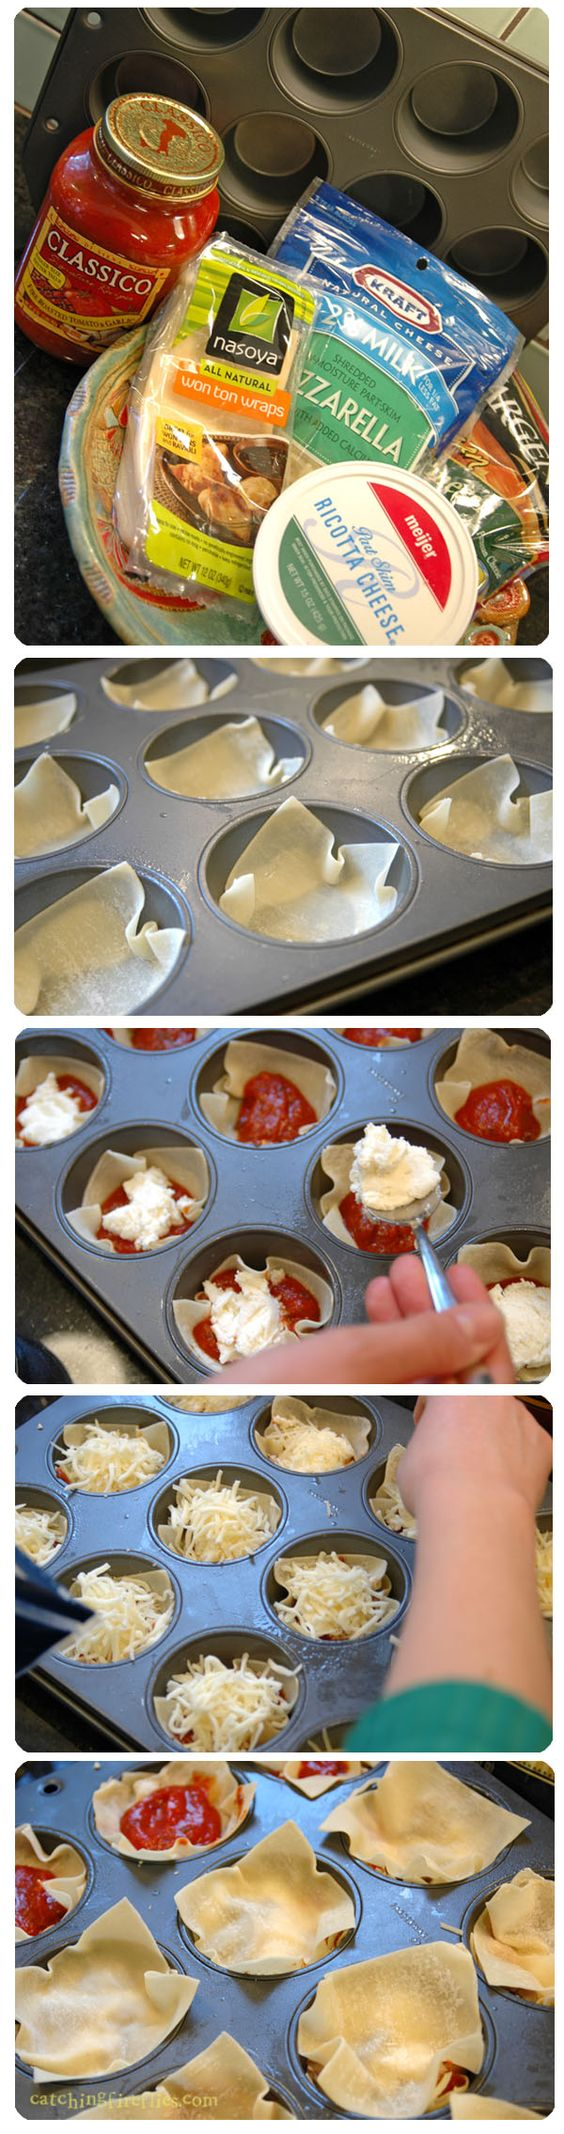 Mini lasagnas...these are right up my alley